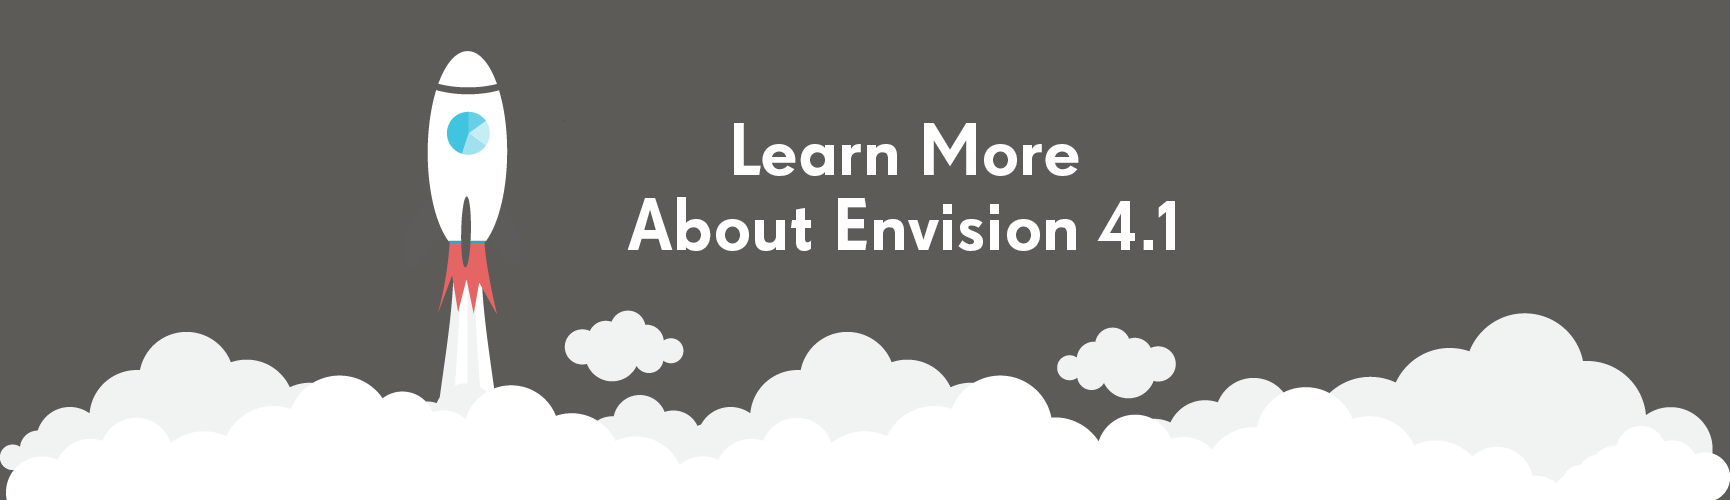 Envision4.1_Image.png